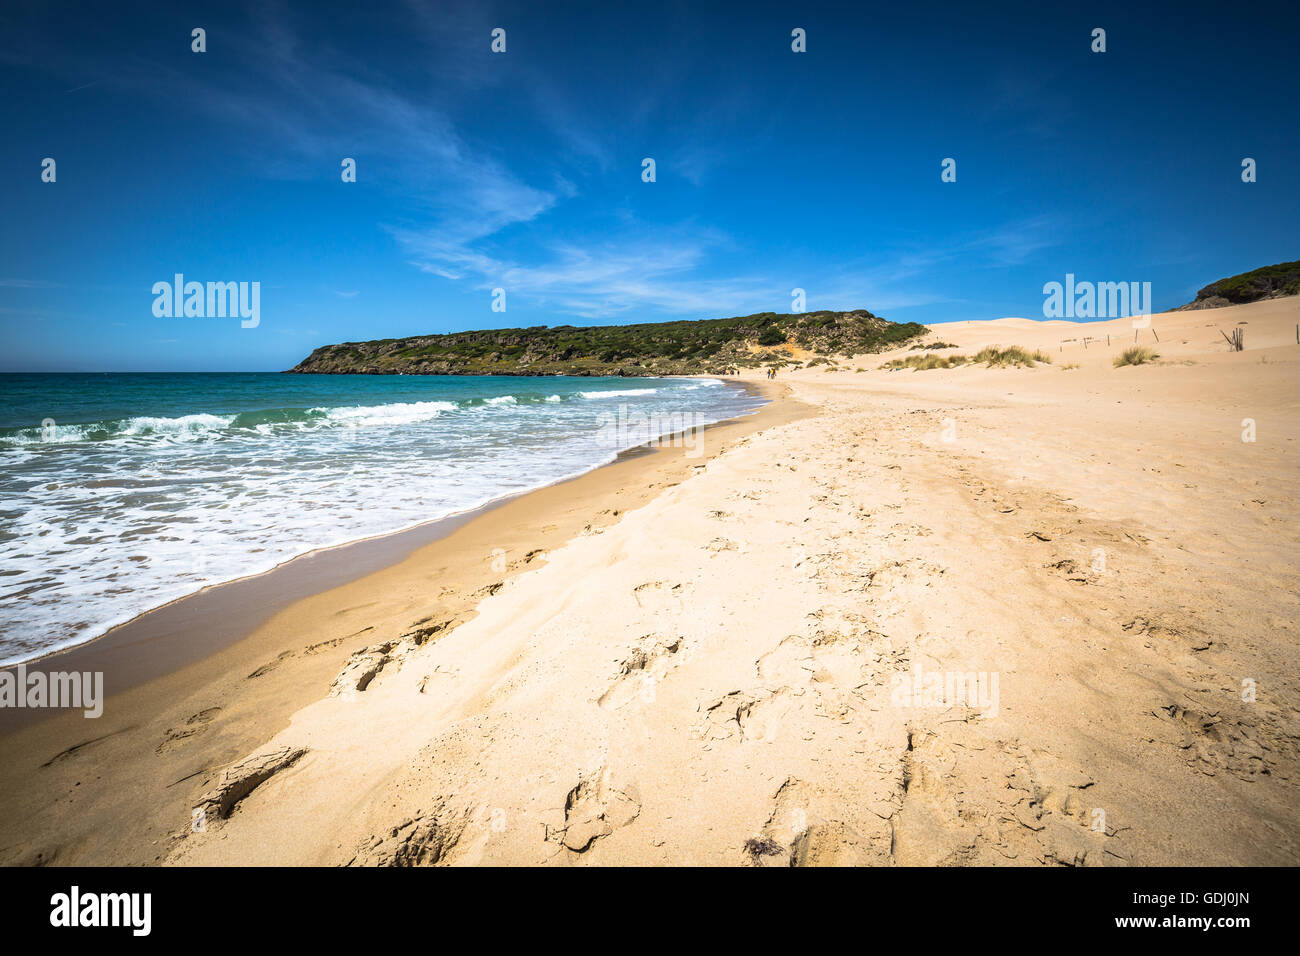 bolonia beach a coastal village in the municipality of Tarifa in the Province of Cadiz in southern Spain. Stock Photo